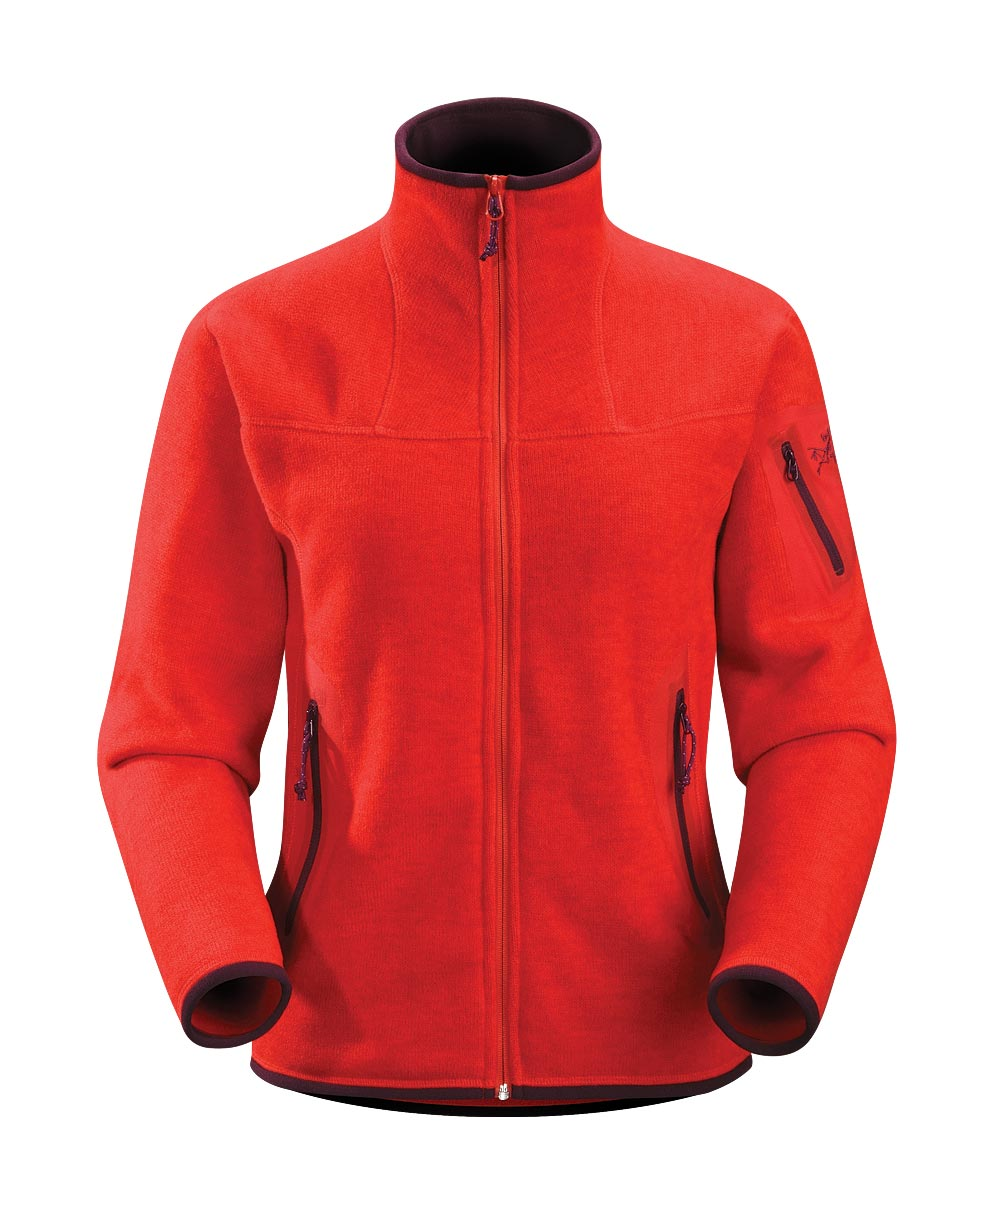 Arcteryx Poppy Covert Cardigan